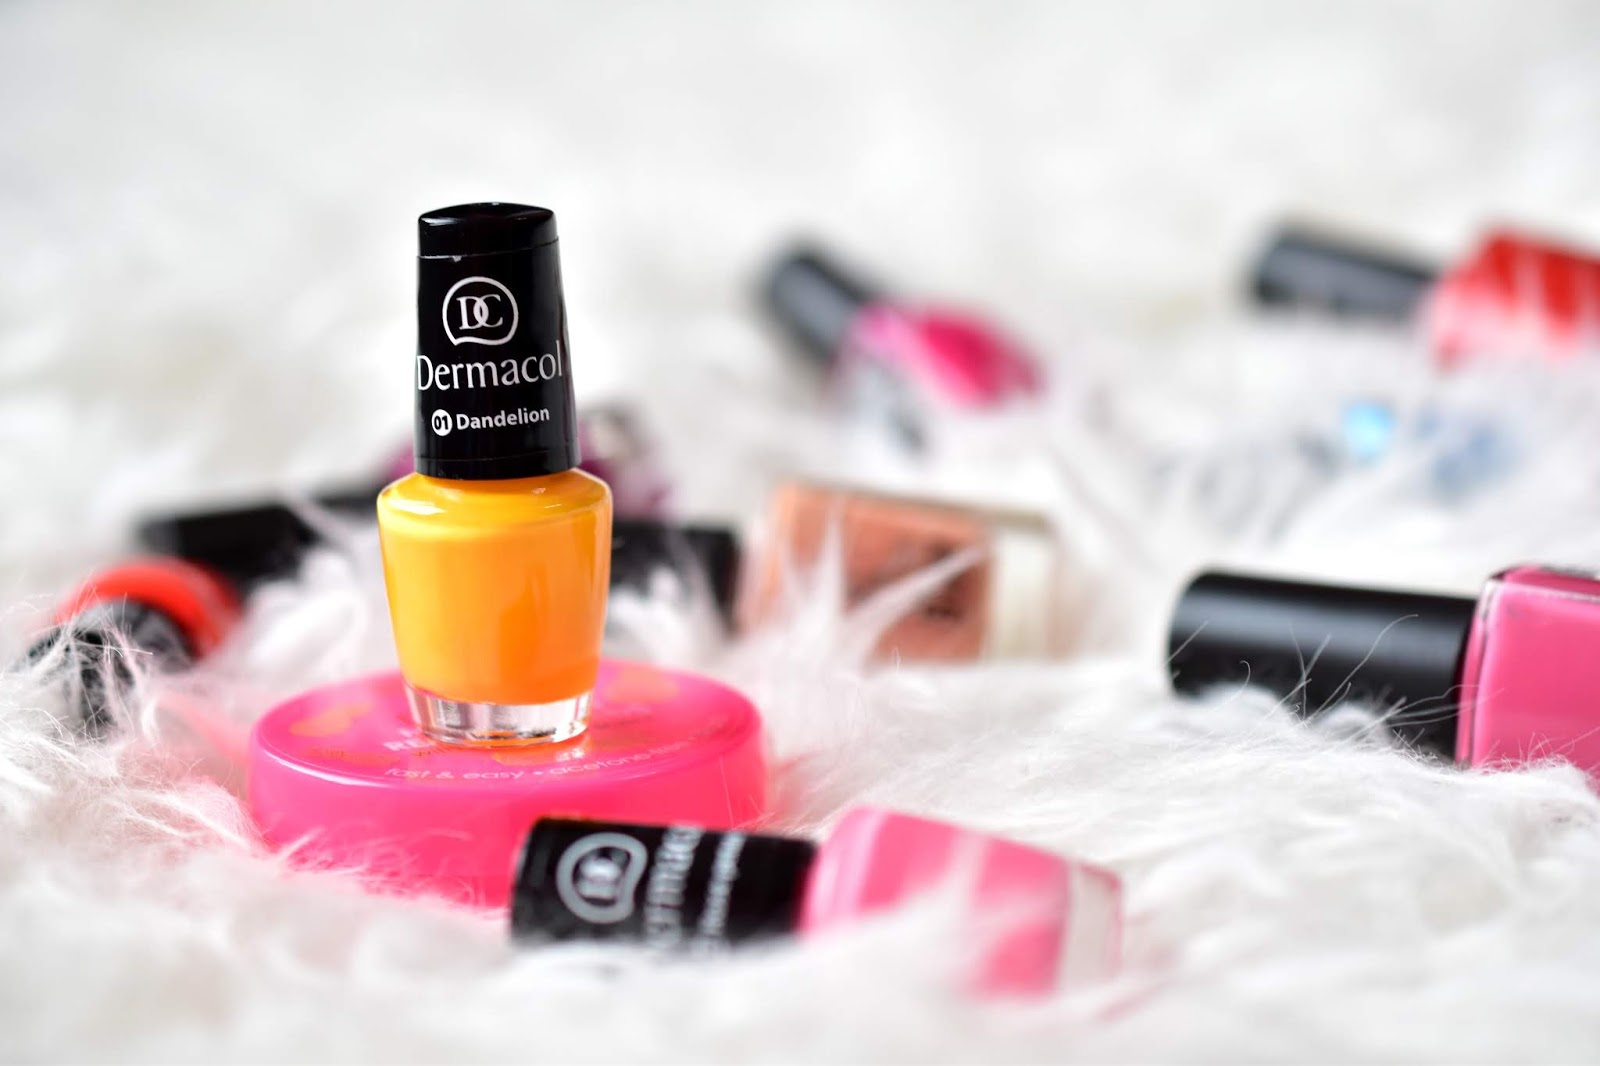 dermacol mini summer collection dandelion